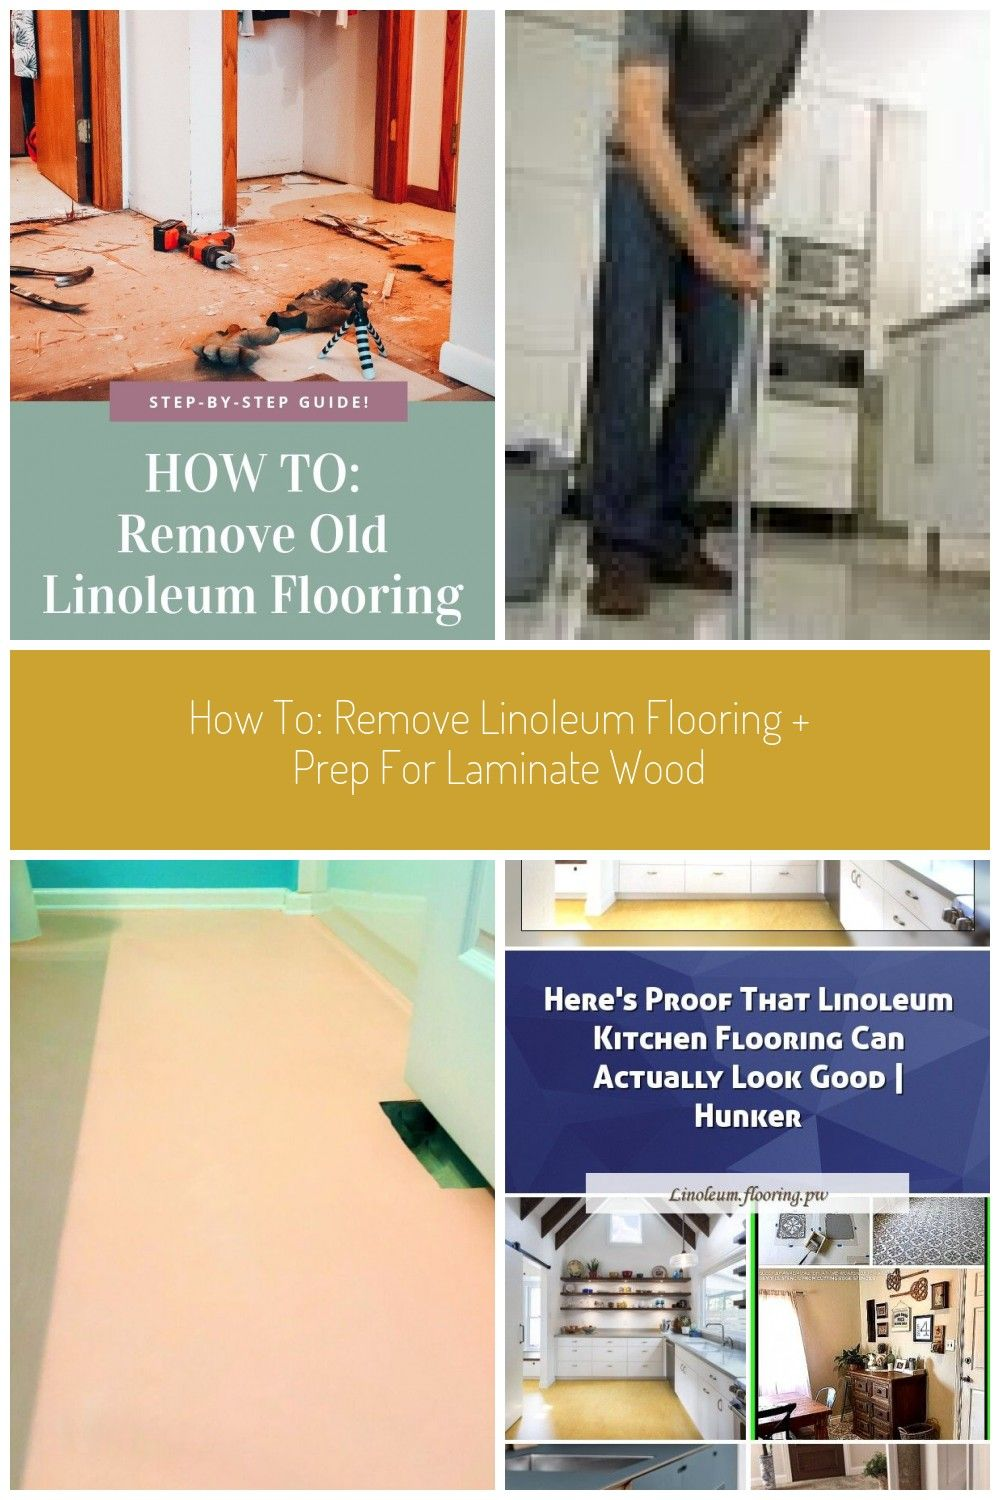 Step by step guide on how to remove linoleum flooring to